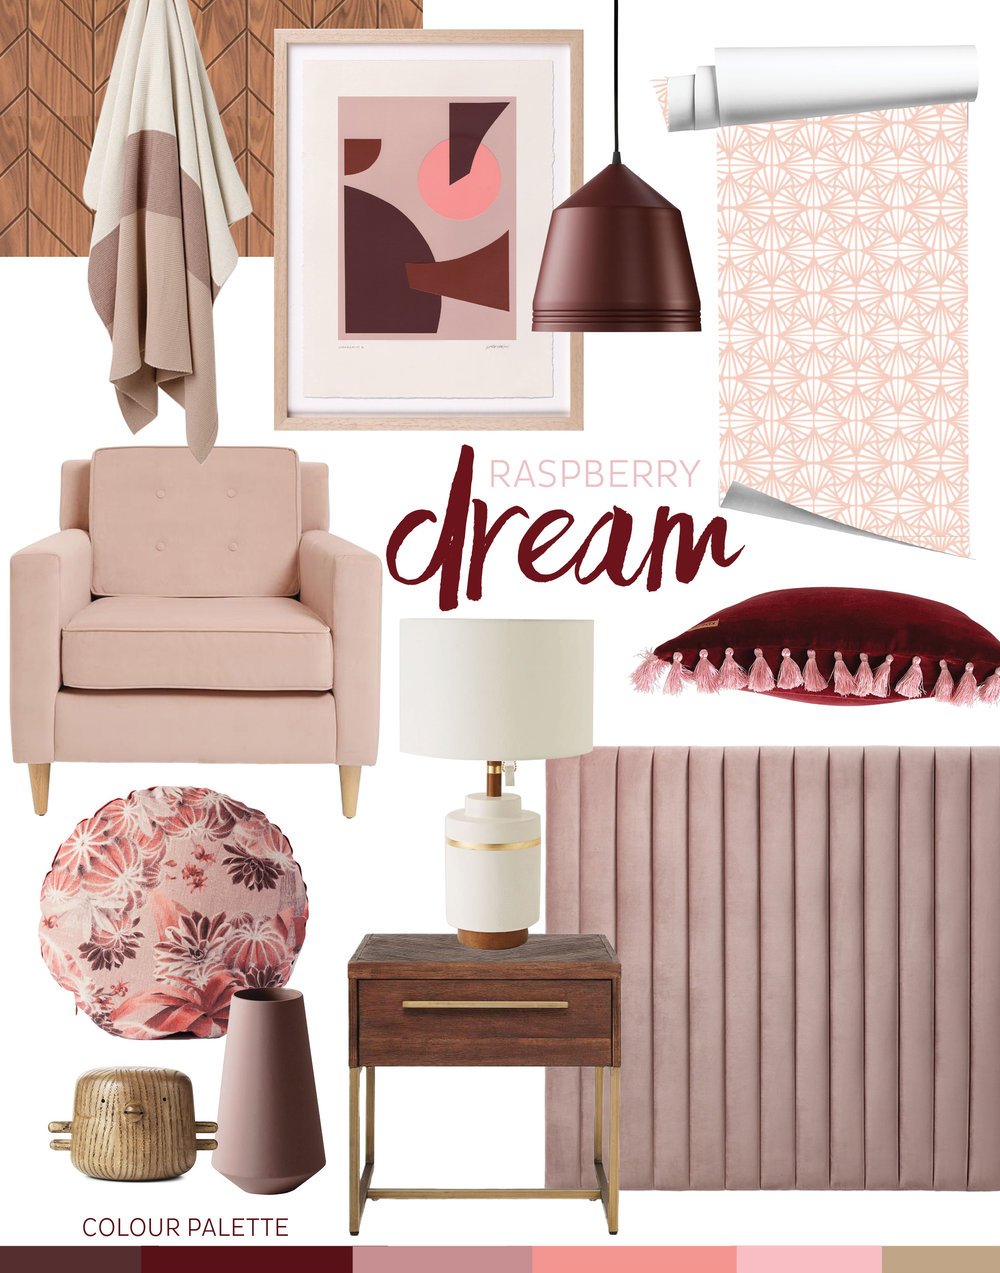 adore_home_blog_burgundy_raspberry_dream_pink_blush_mauve_bedroom_walnut_mid_century_modern_vibes_style.jpg